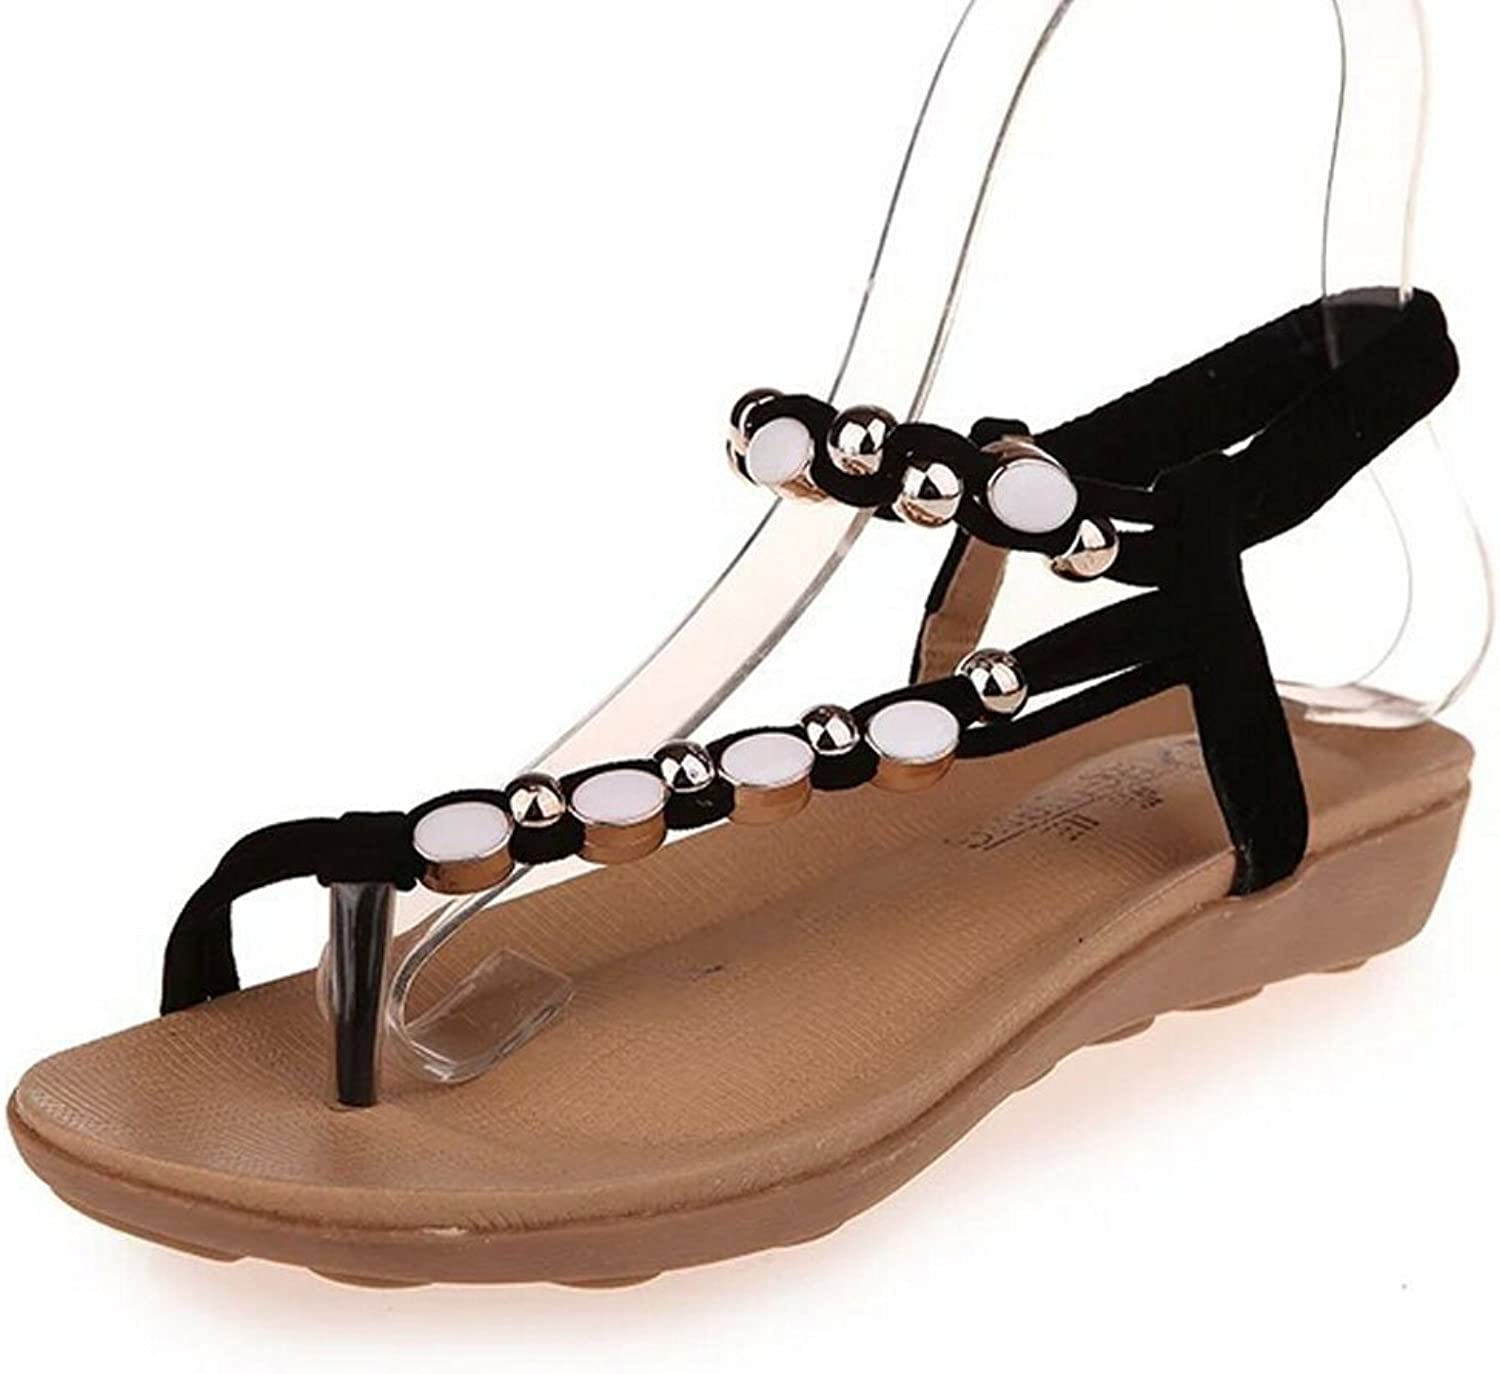 San hojas Flat Sandals with Rhinestone Summer Beach shoes Flip Sandals Black